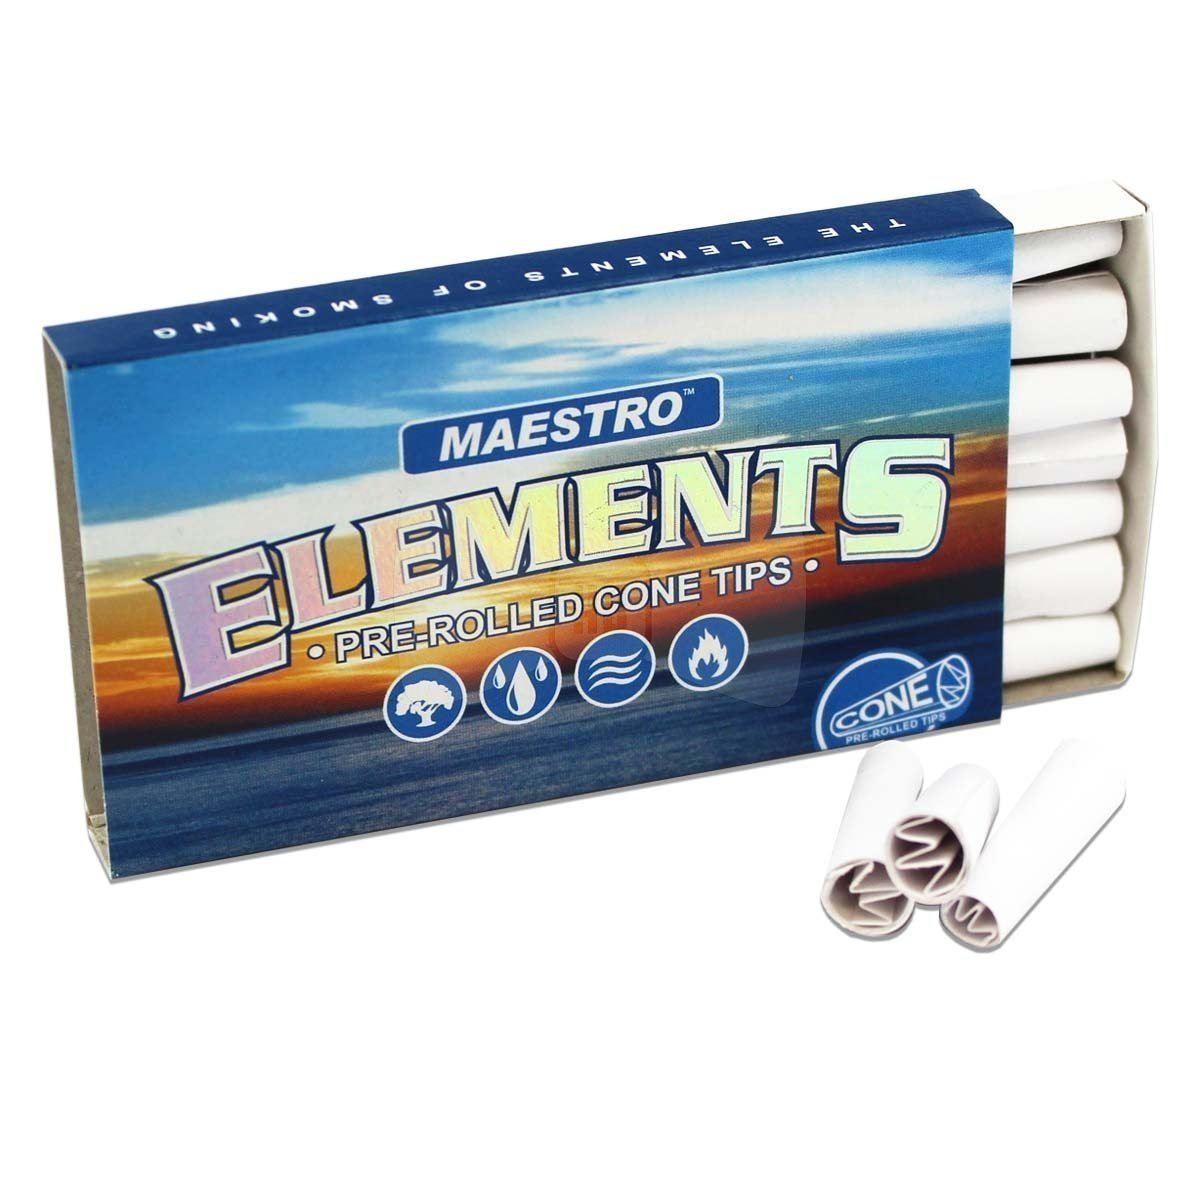 Full shot of a partly opened pack of Maestro Elements cone tips in blue and gold colors sunset and sea design